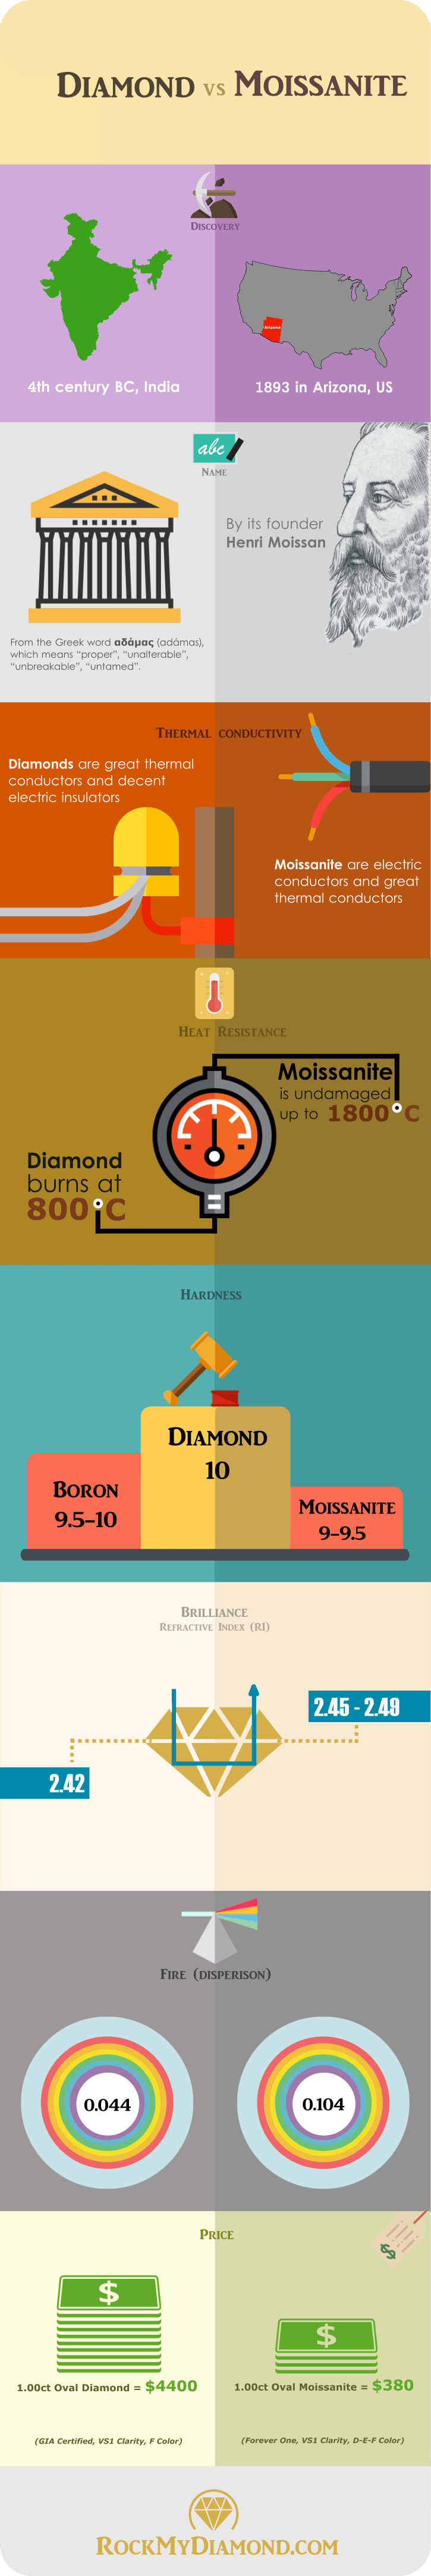 Moissanite vs Diamond: Spot the Differences [ With Infographic ]